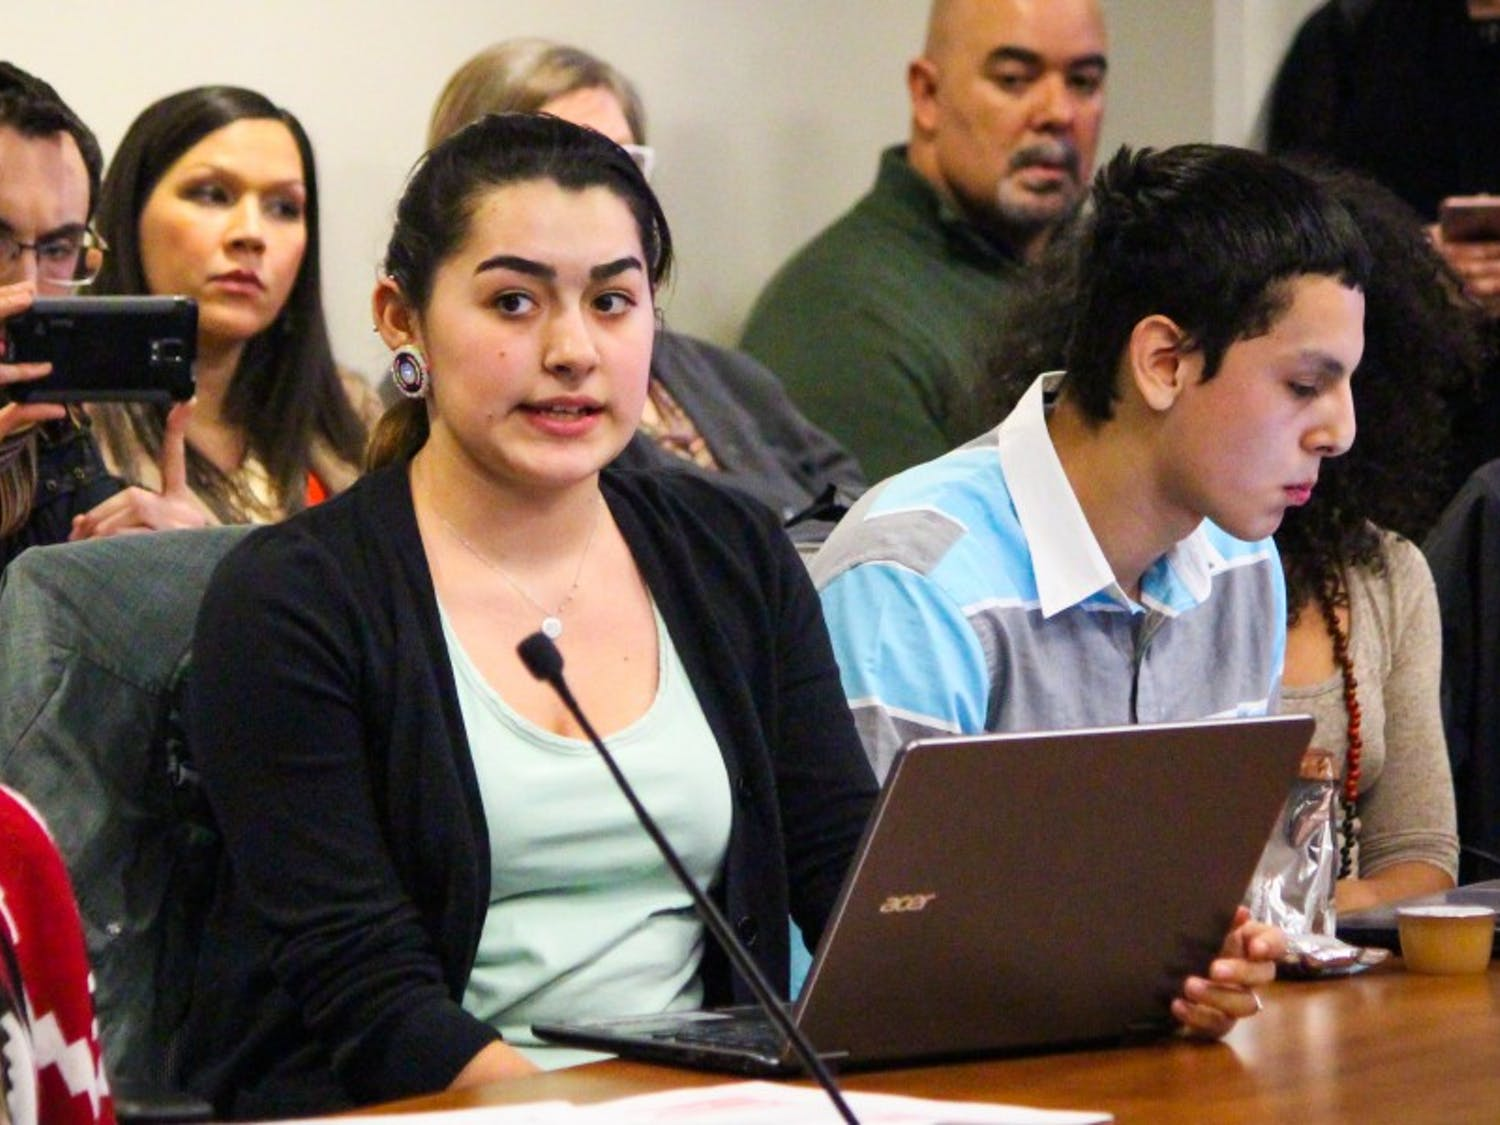 Members of Wunk Sheek spoke Tuesday night in a successful attempt to convince the ASM Finance Committee to grant their appeal.